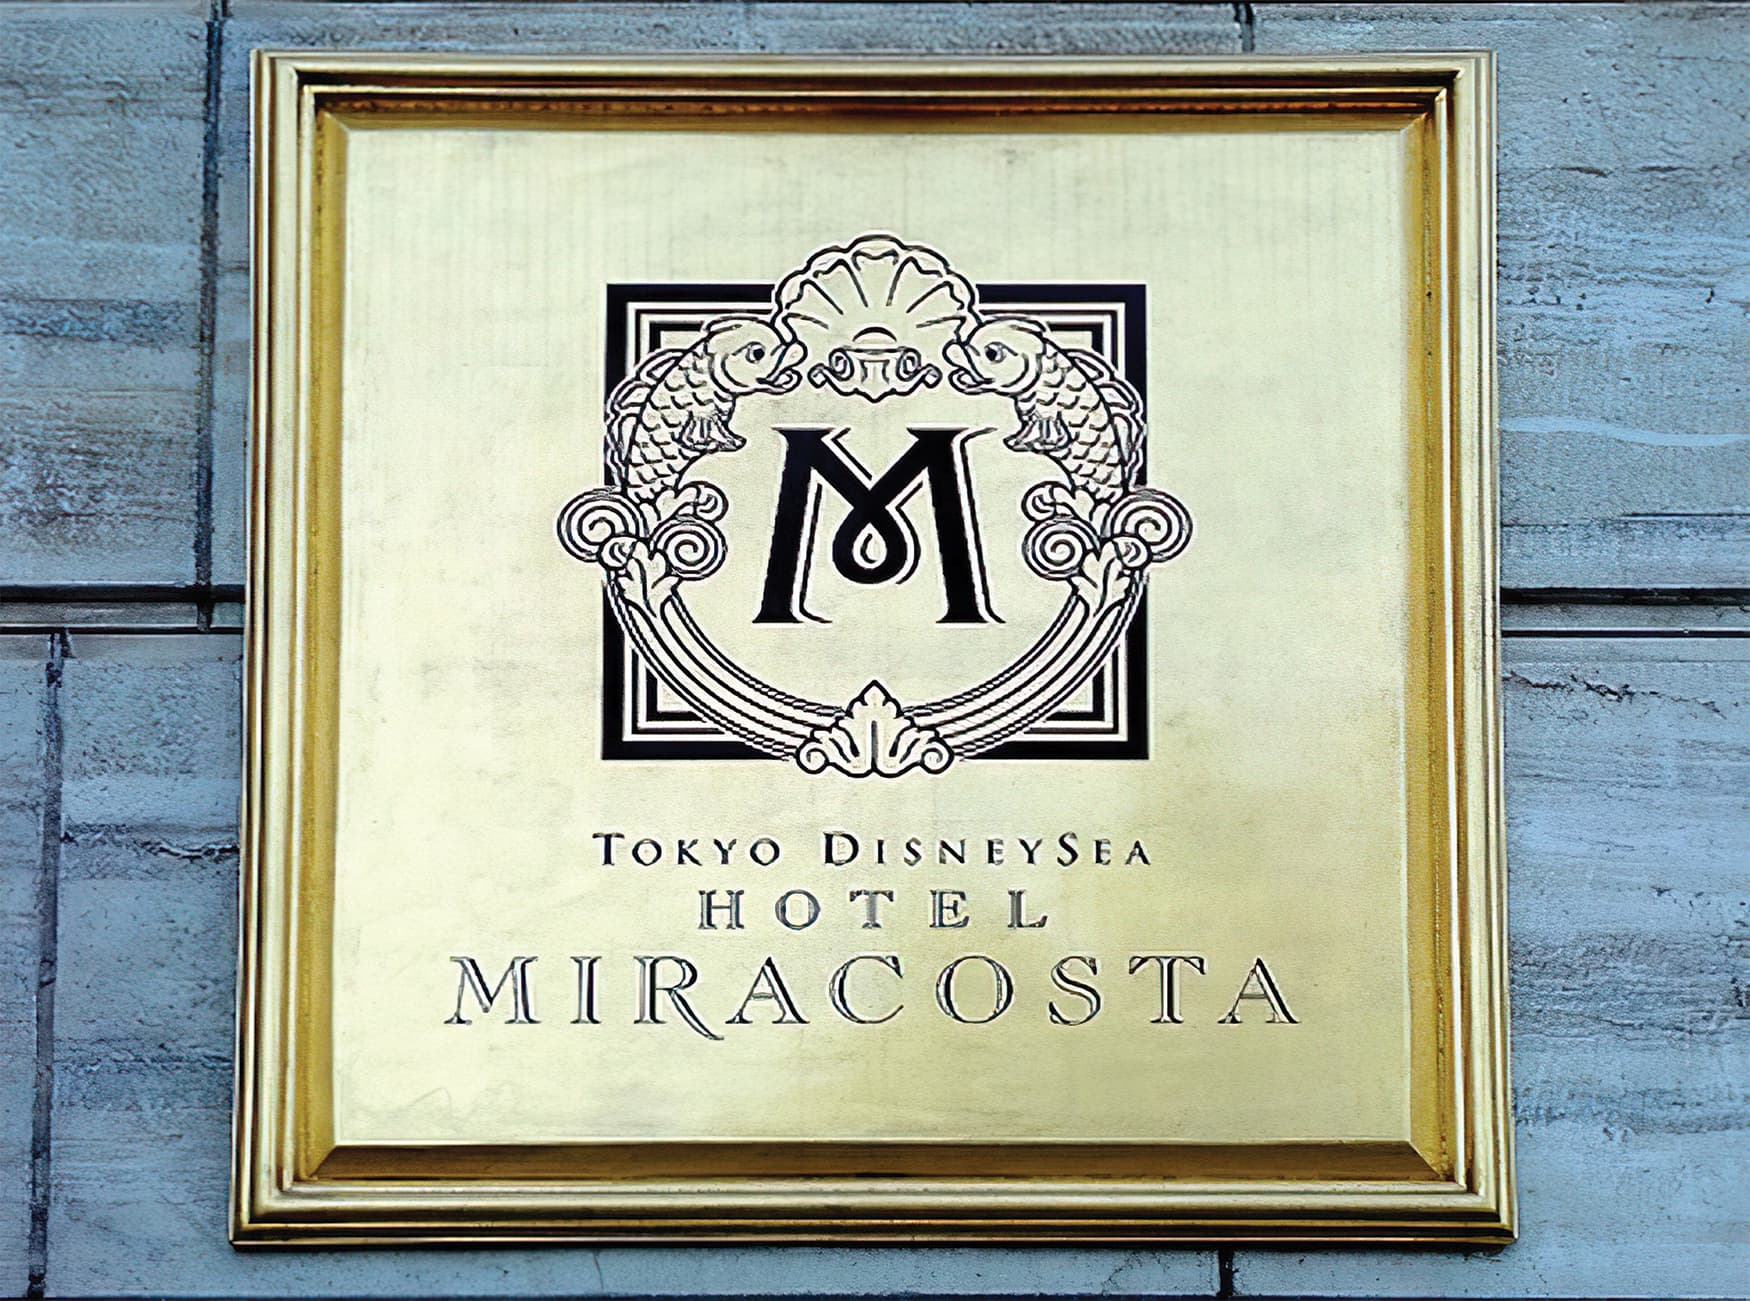 Disney Hotel Miracosta, located in Tokyo, Japan. Hospitality Design. RSM Design was commissioned to create the identity, logo, branding, and signage. Identity Plaque Design.